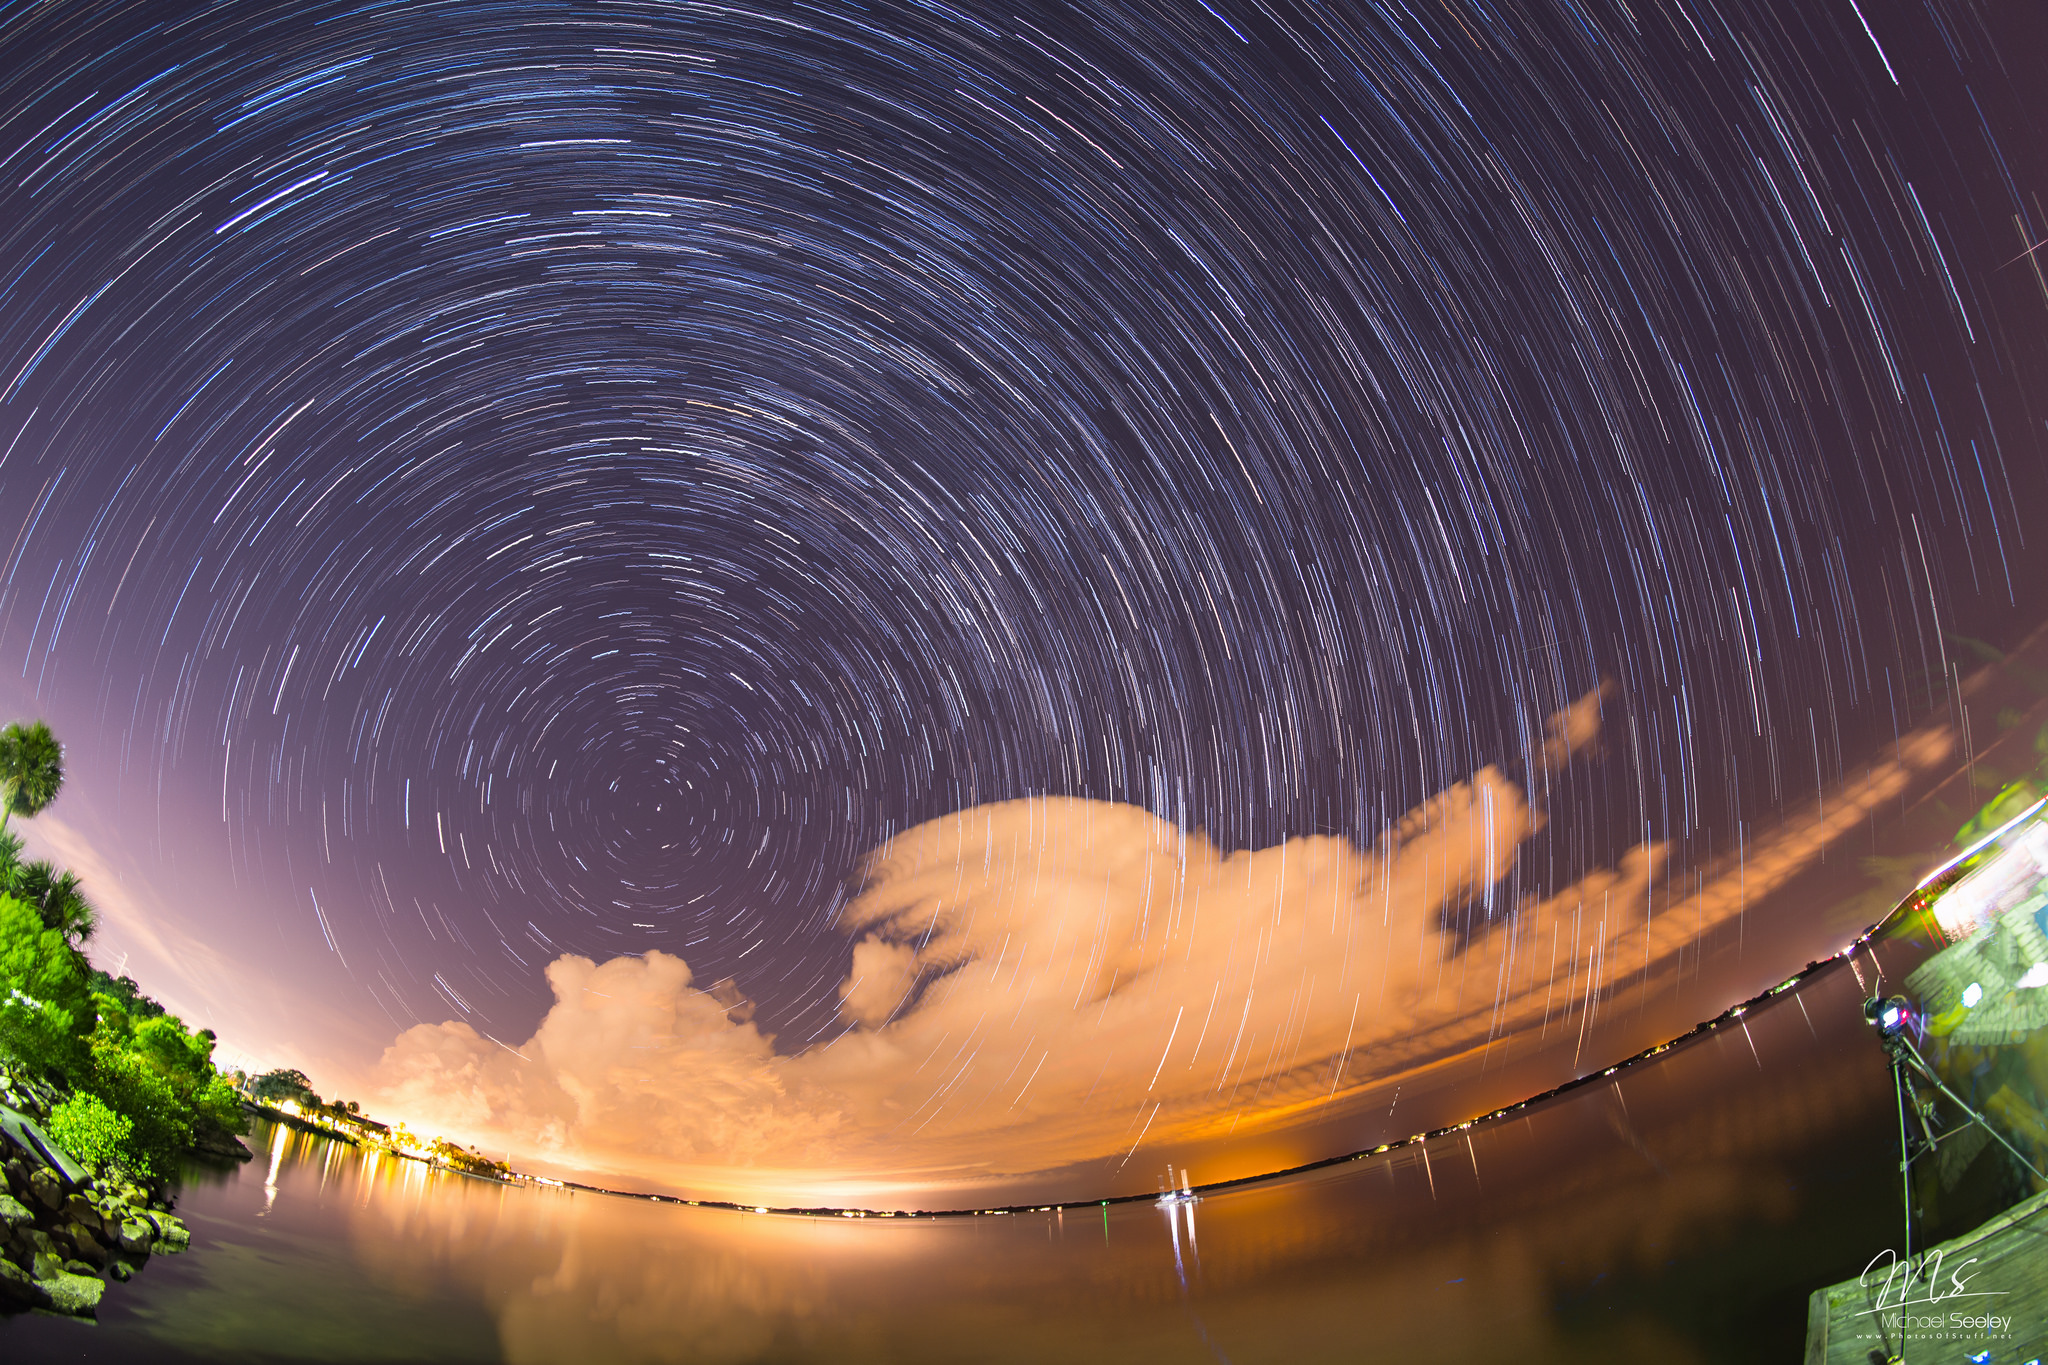 Picture of the Perseid Meteor Shower by Michael Seeley. https://www.flickr.com/photos/mseeley1/28860028781